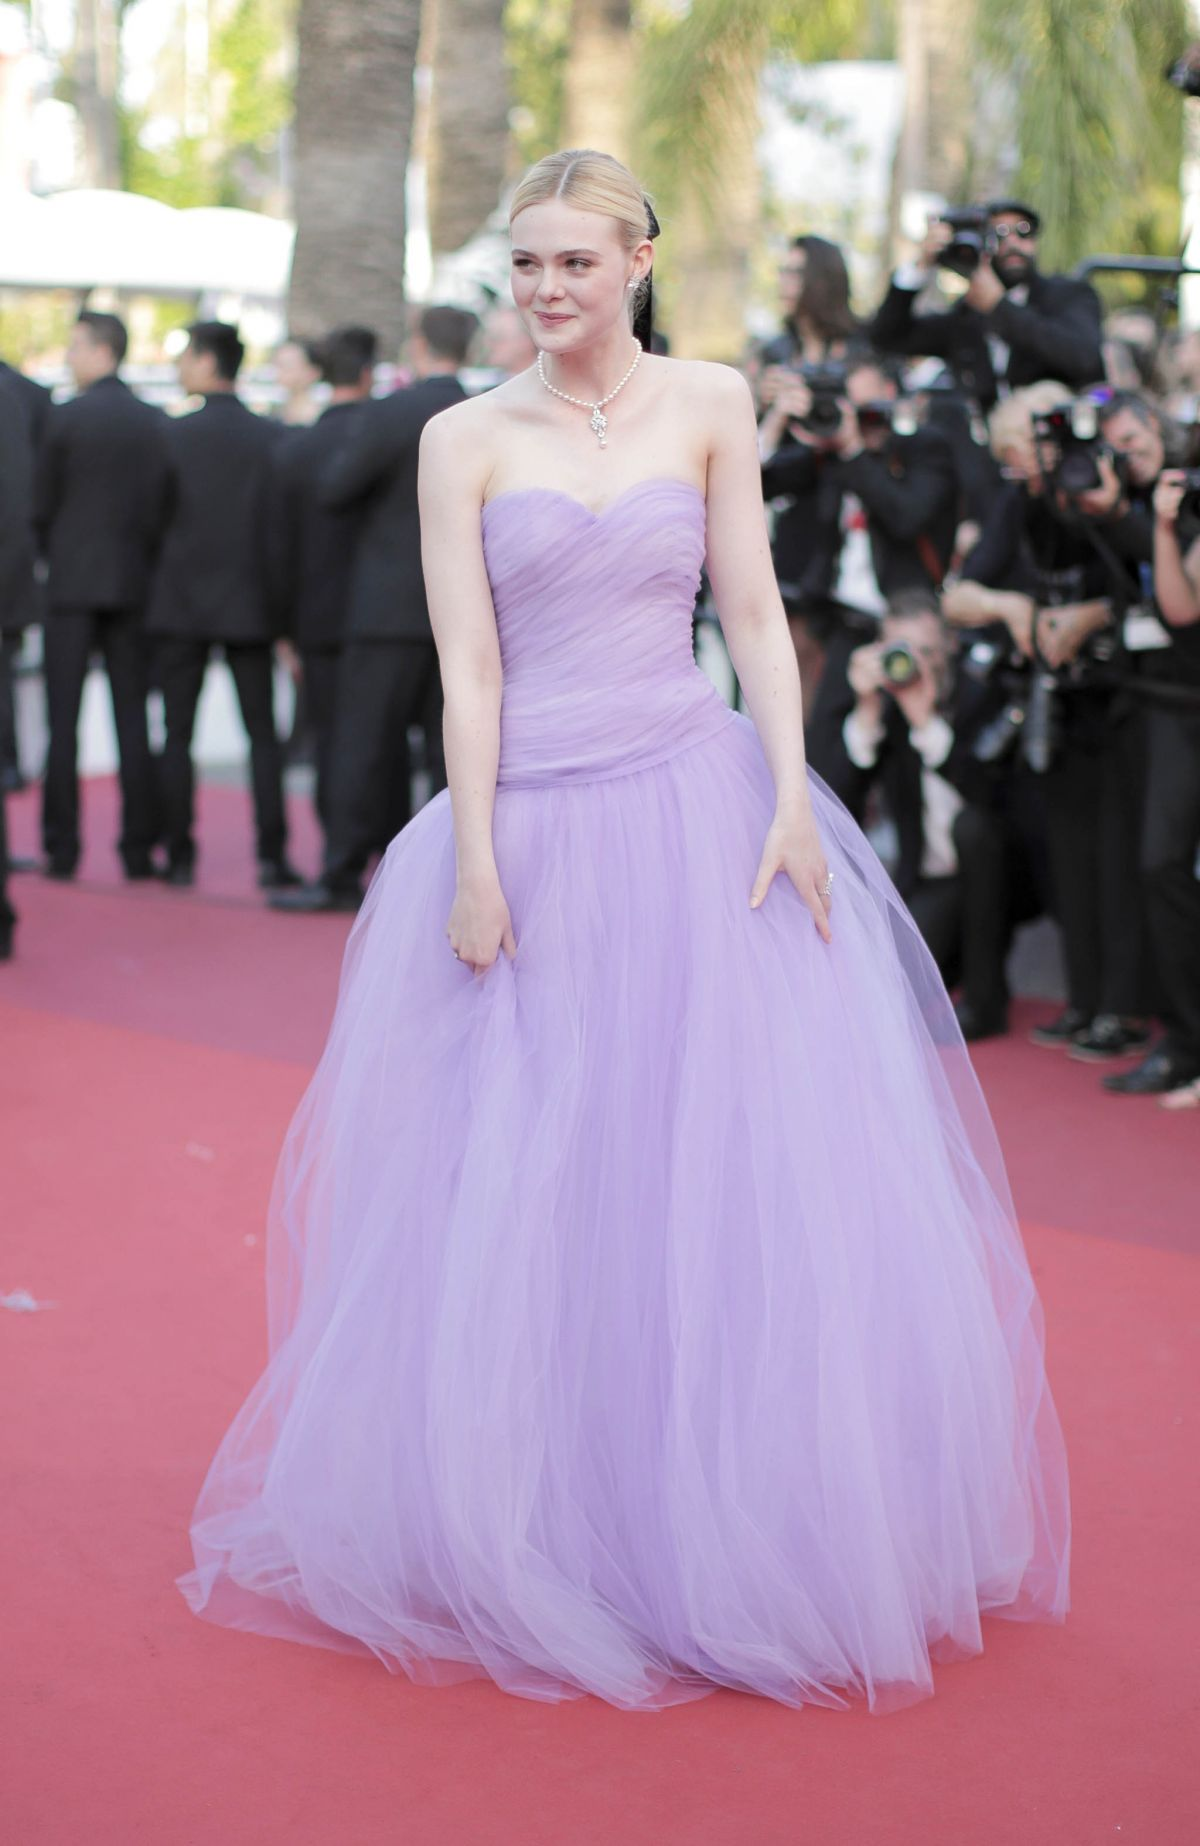 http-starity.hu-forum-topik-580166-elle-fanning-the-beguiled-premiere-during-the-70th-annual-cannes-film-festival-at-palais-des-festivals-in-cannes-france-may-24-2017-_1.jpg